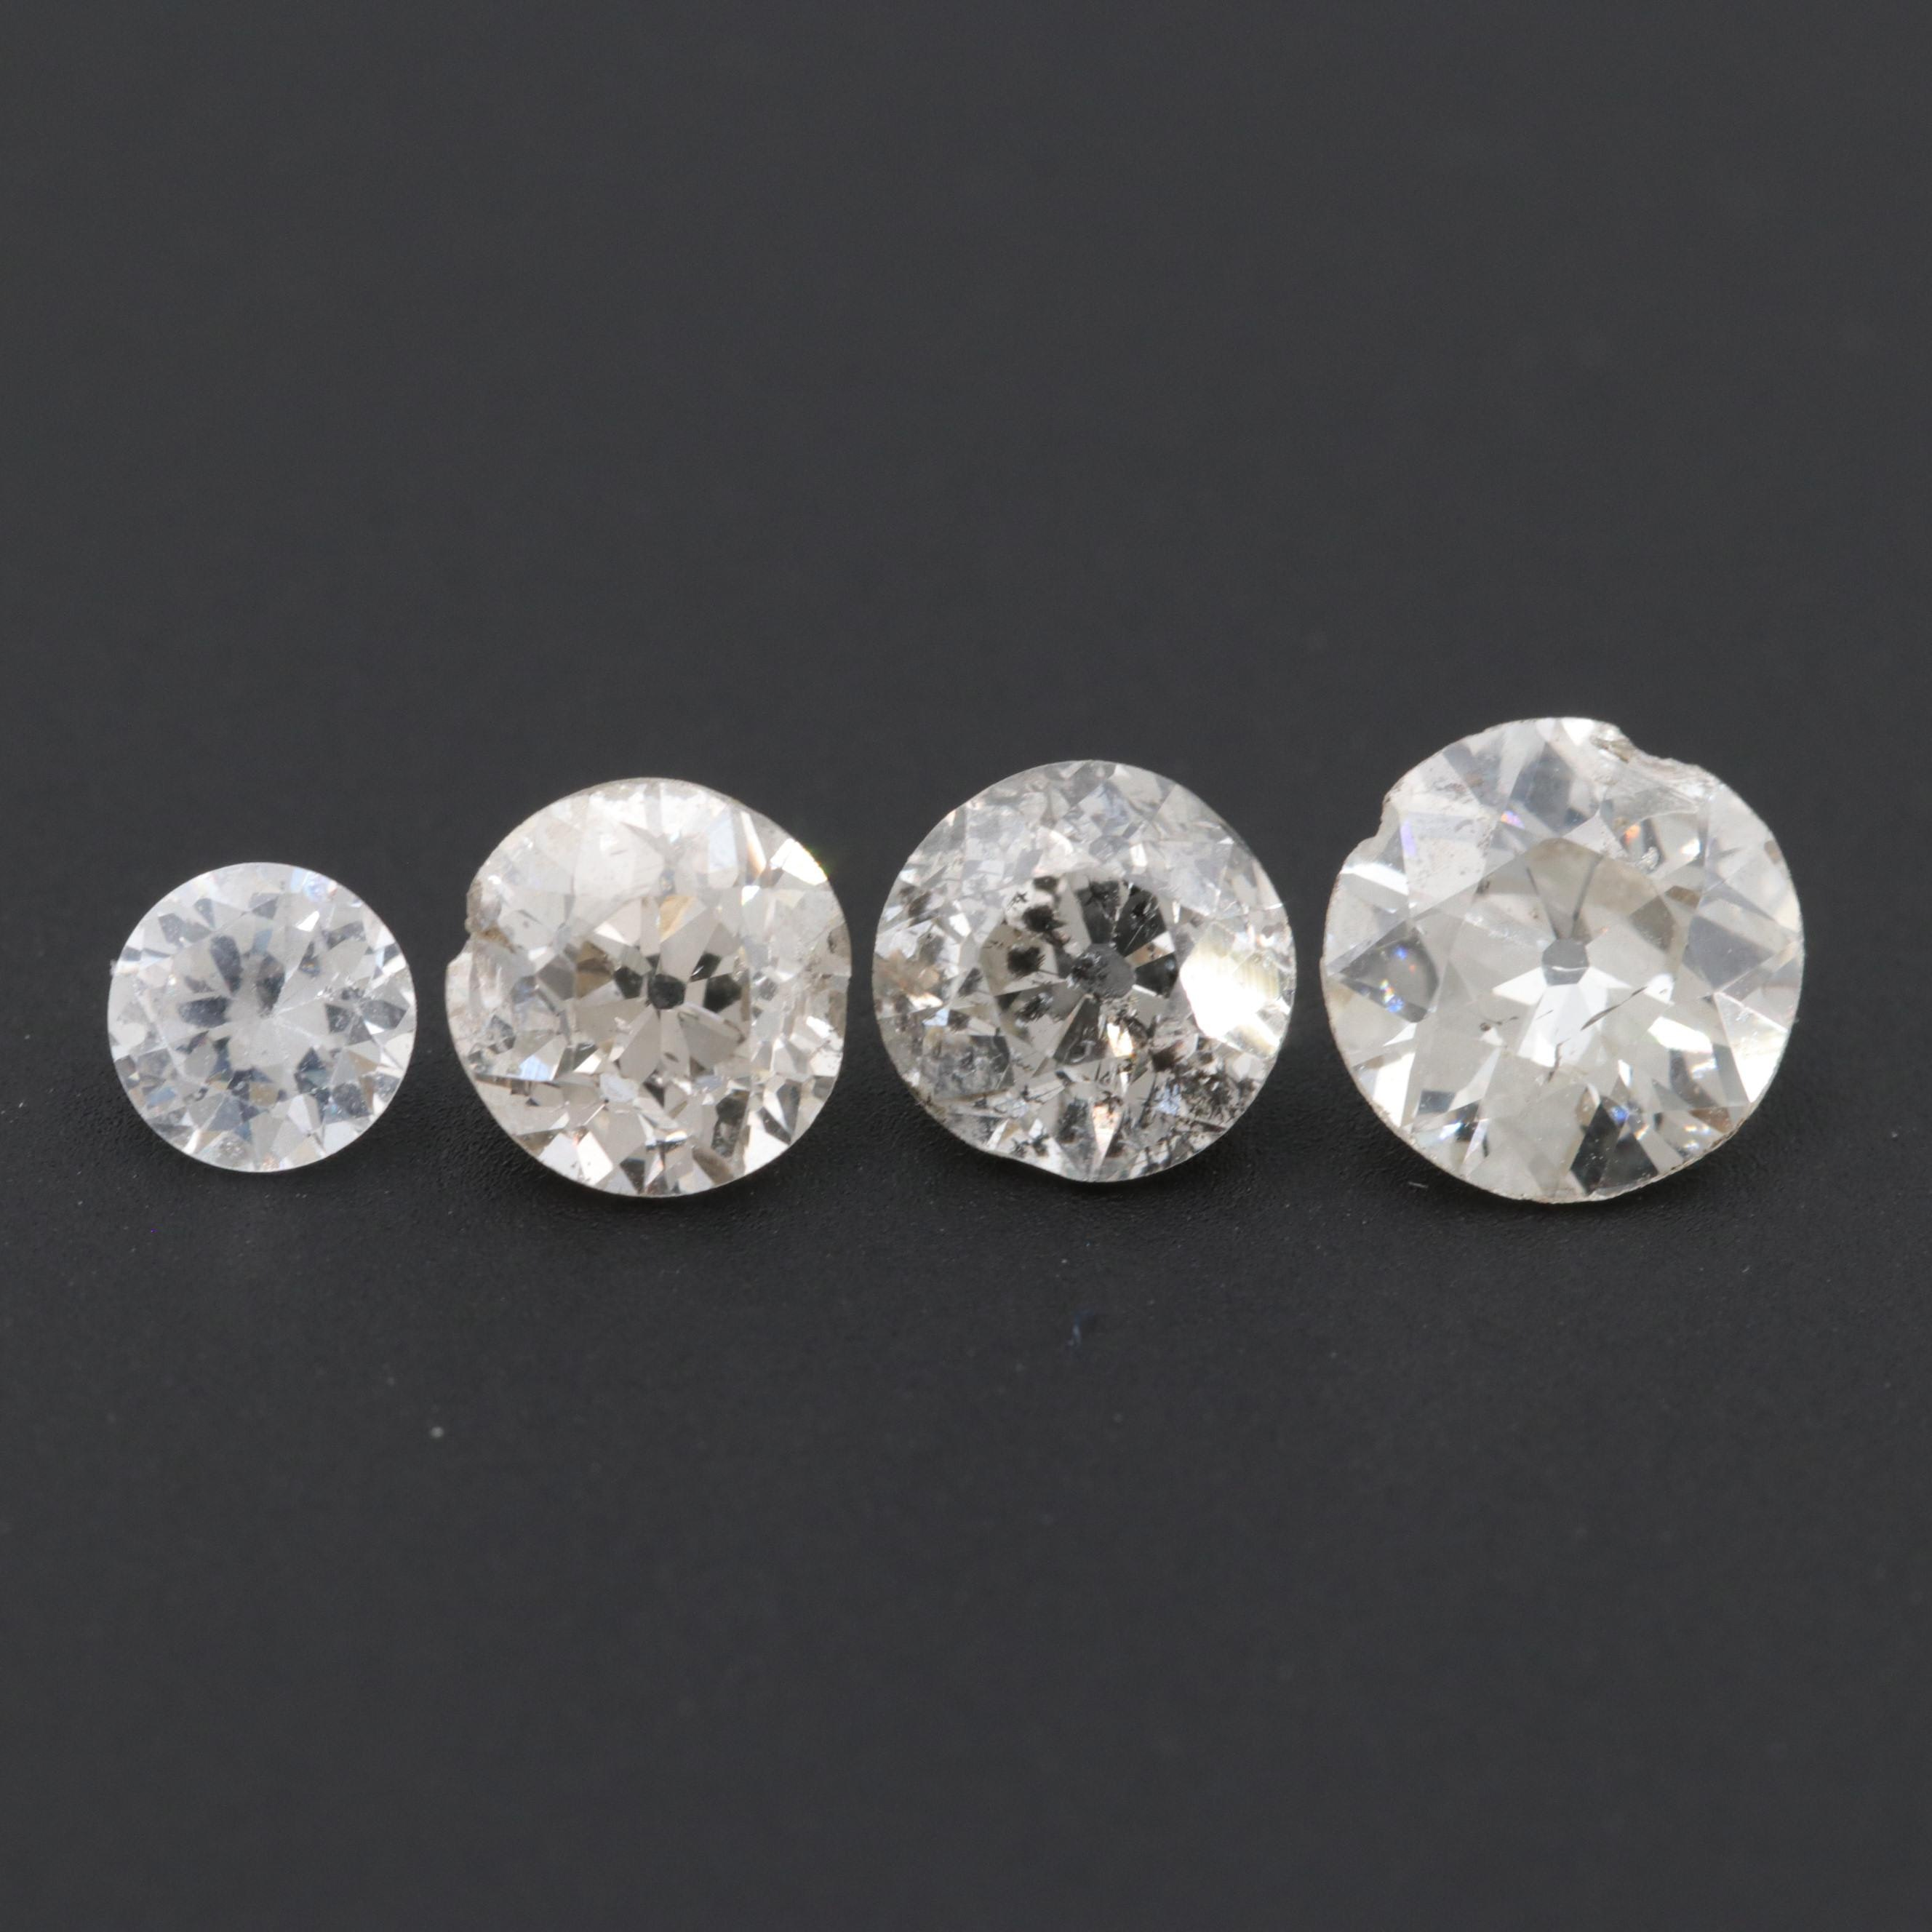 Loose 1.81 CTW Diamonds